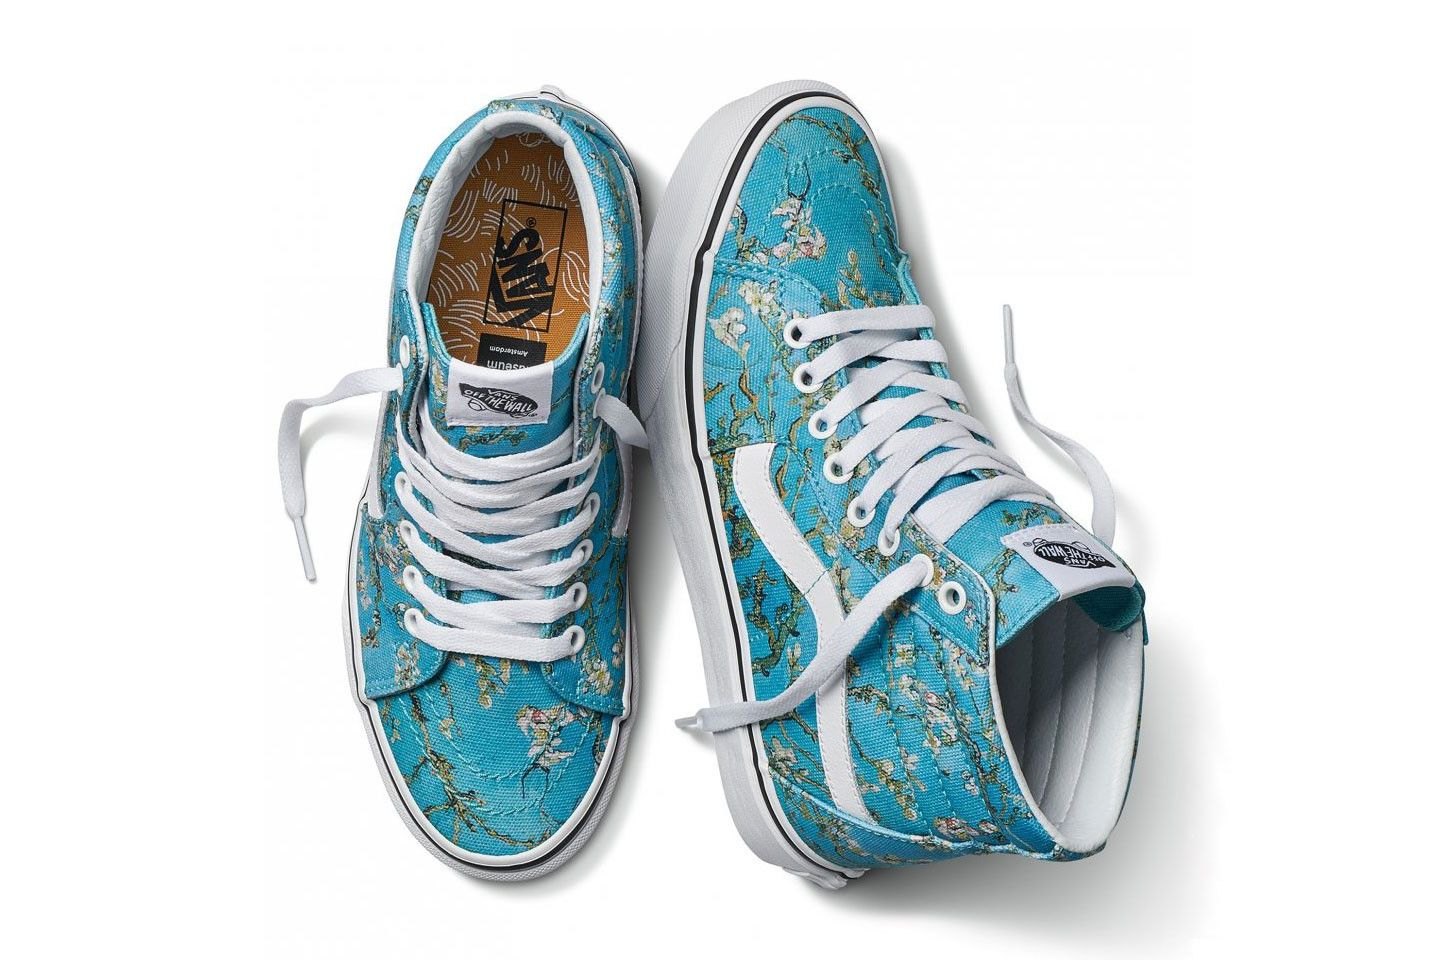 6b7f2c8d16 vincent van gogh museum vans collaboration artwork sneaker shoe sk8 hi blue  white almond blossom flower